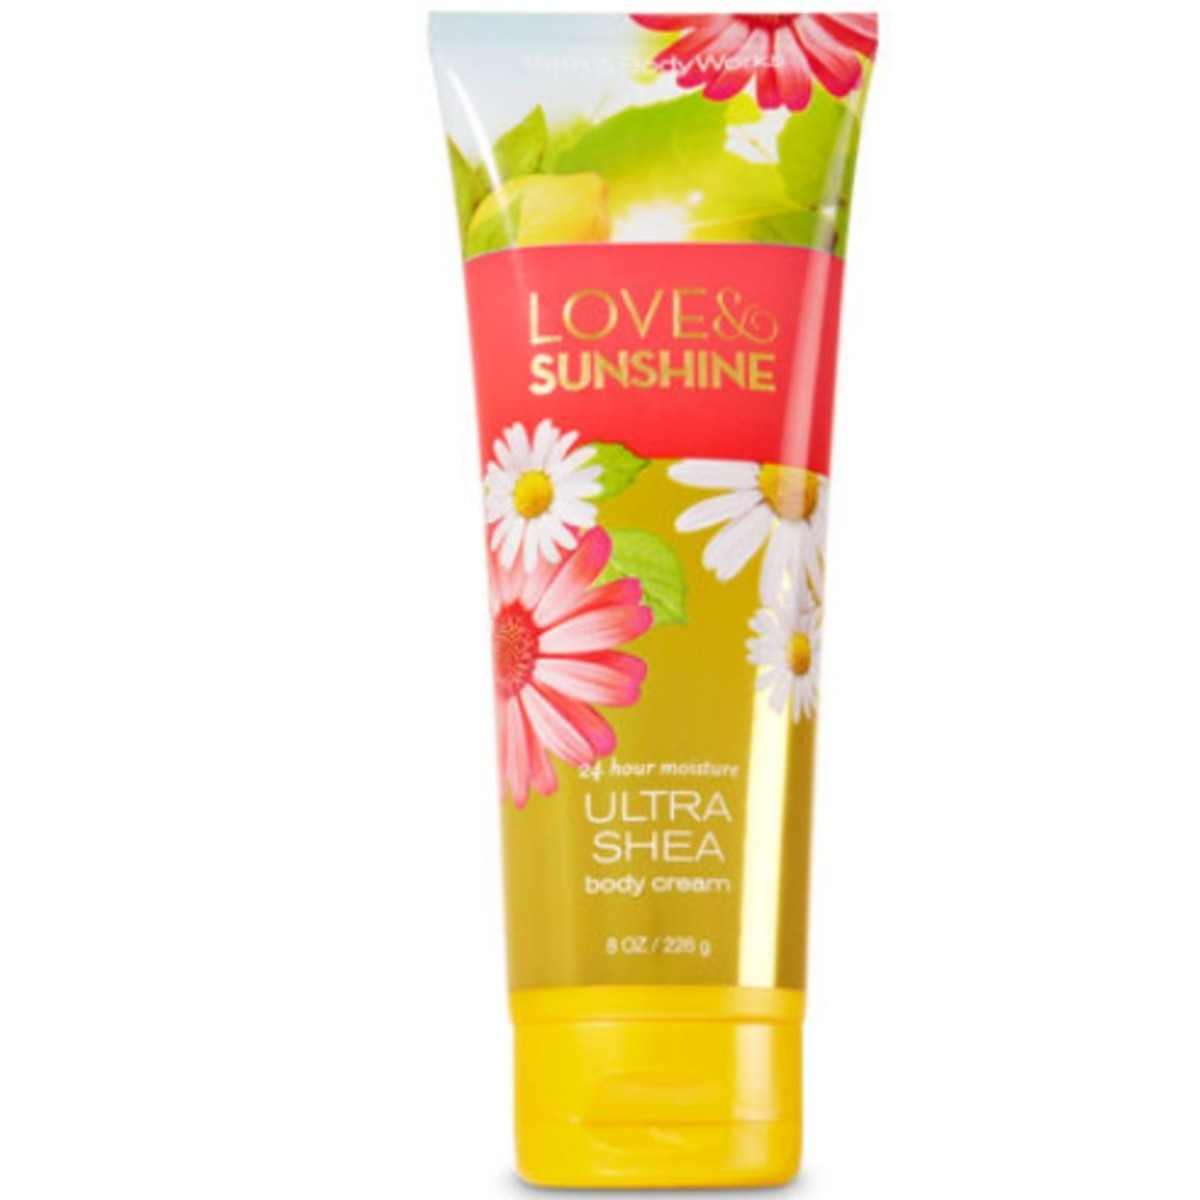 Love & Sunshine Body Cream (Parallel Imports Product)